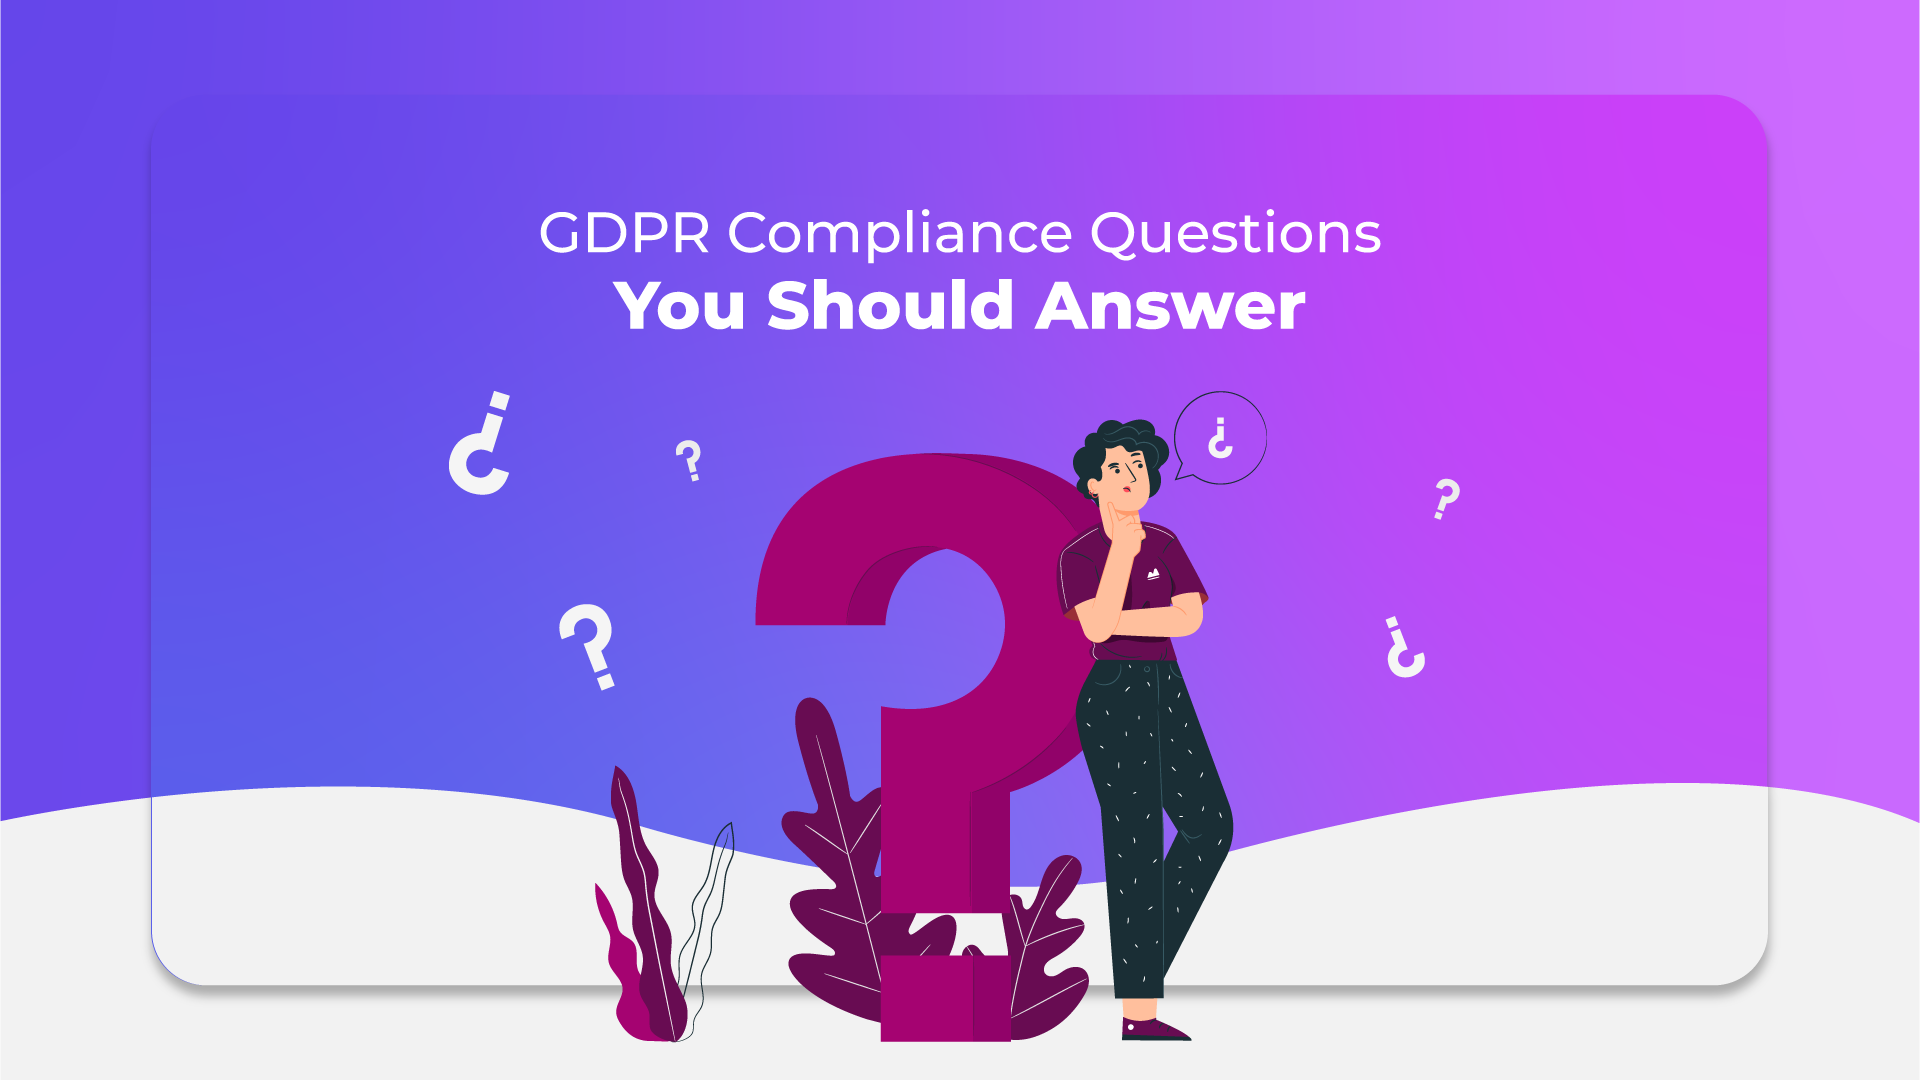 GDPR Compliance Questions You Should Answer